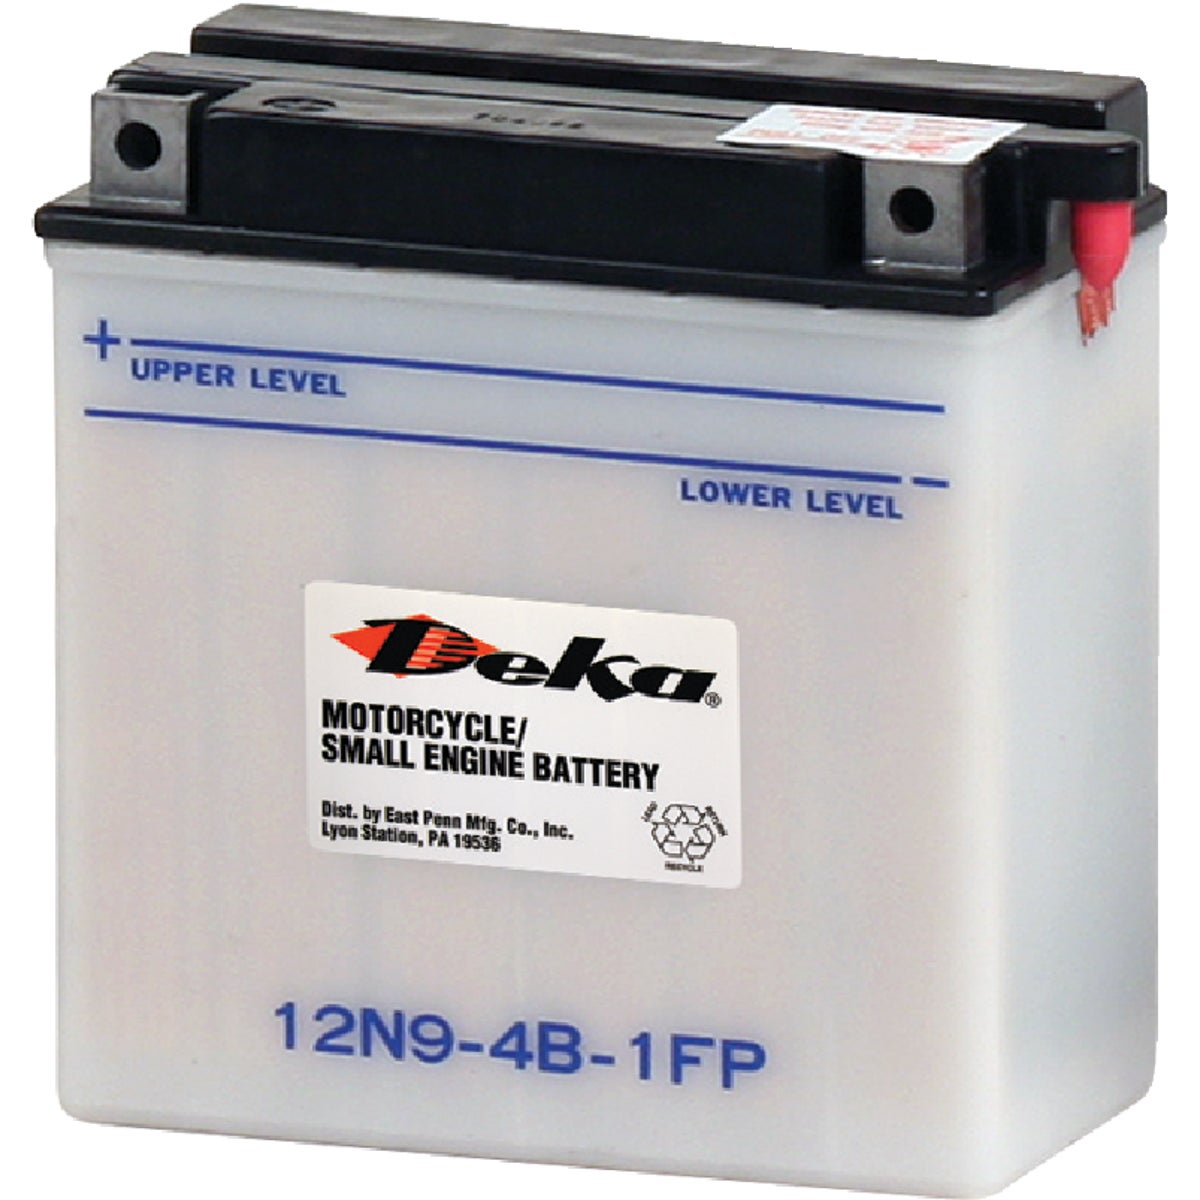 POWER SPORT BATTERY - 12N94B1FP by East Penn Mfg. Co.